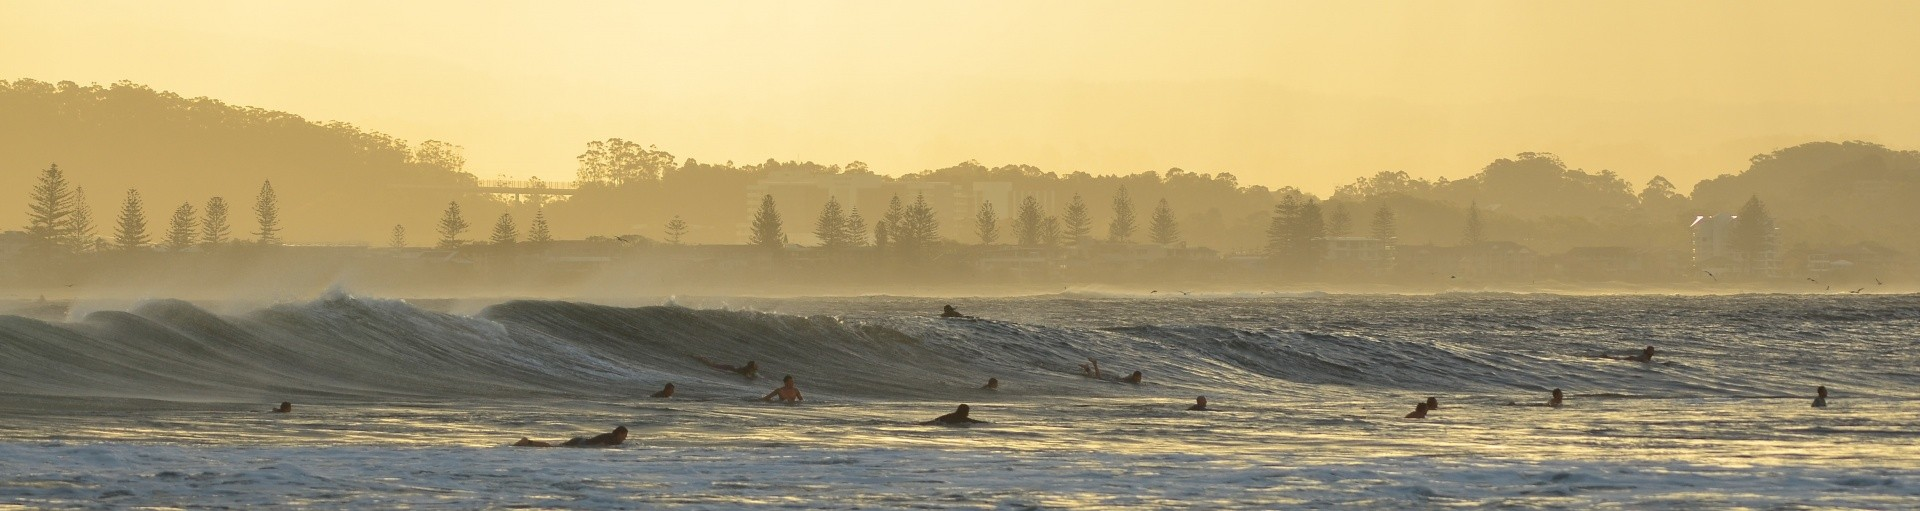 Bertie's photo of Snapper Rocks